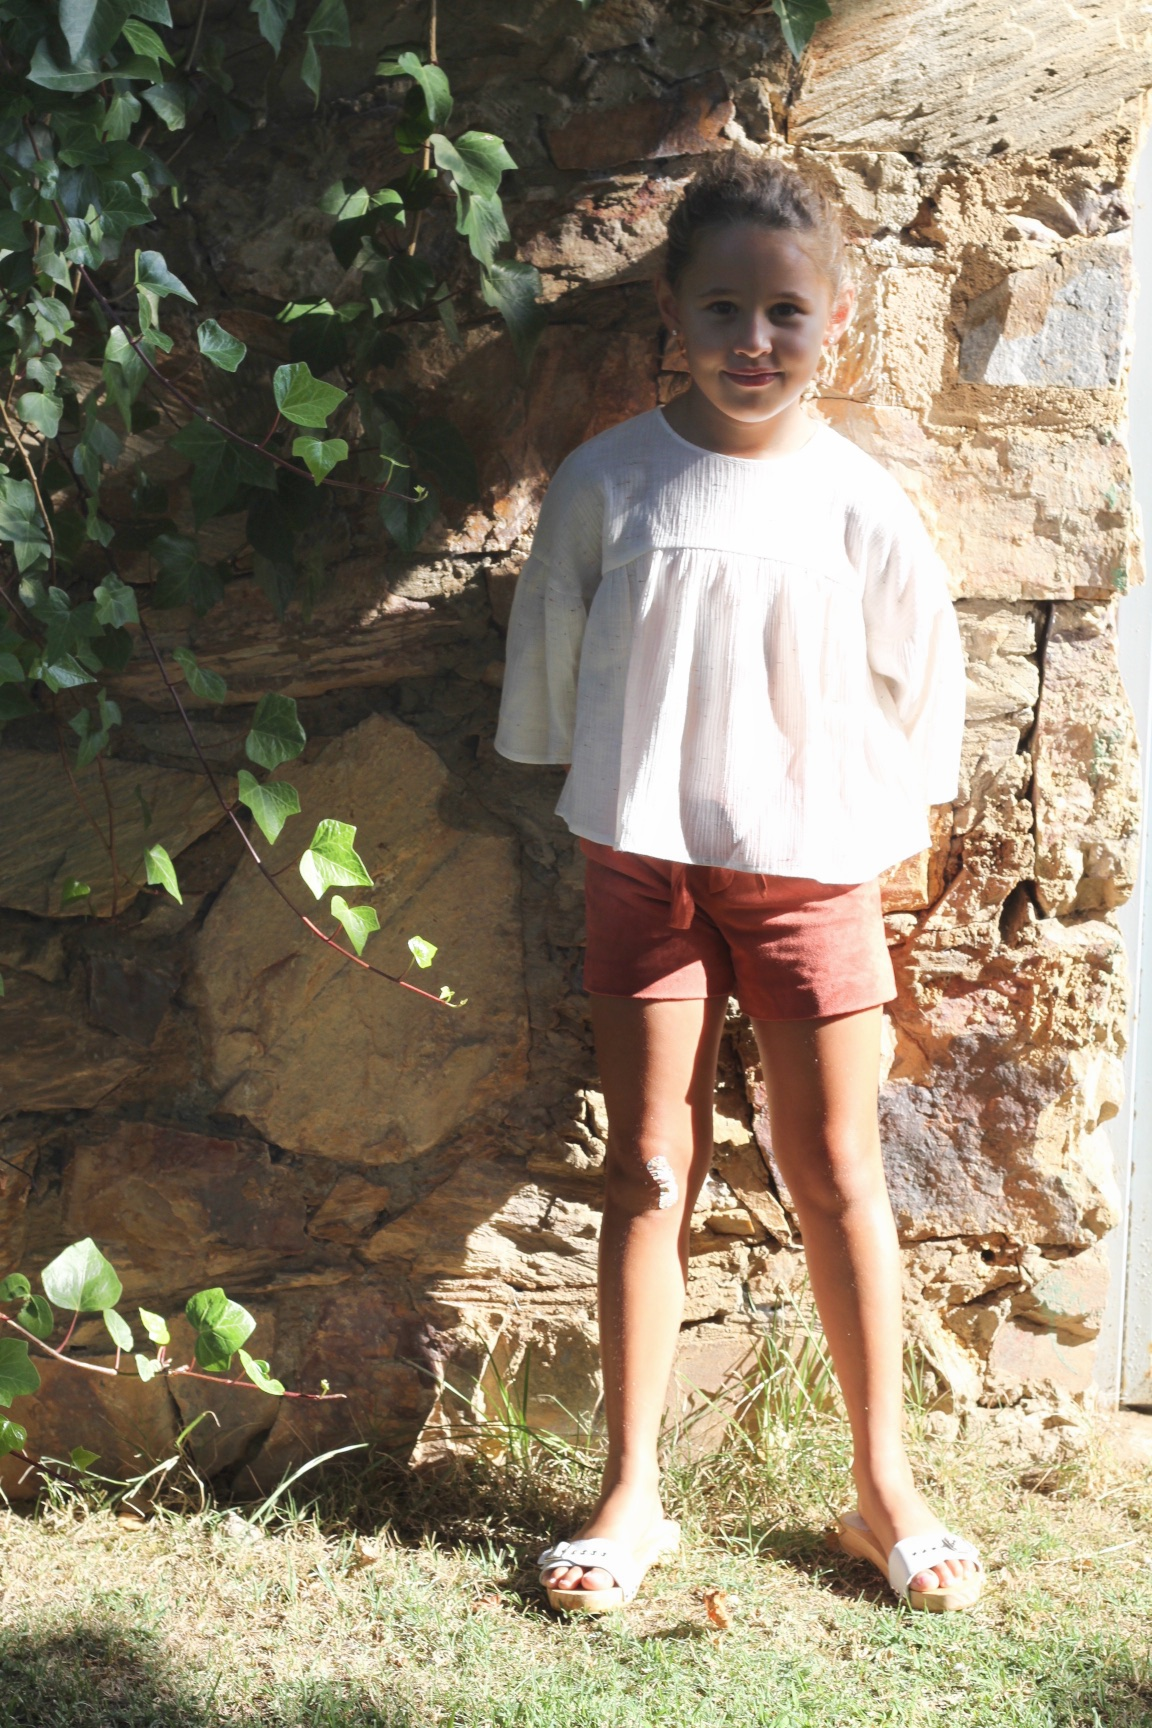 Zara-look-girl-marsala-shorts-fashion-kids-descalzaporelparque